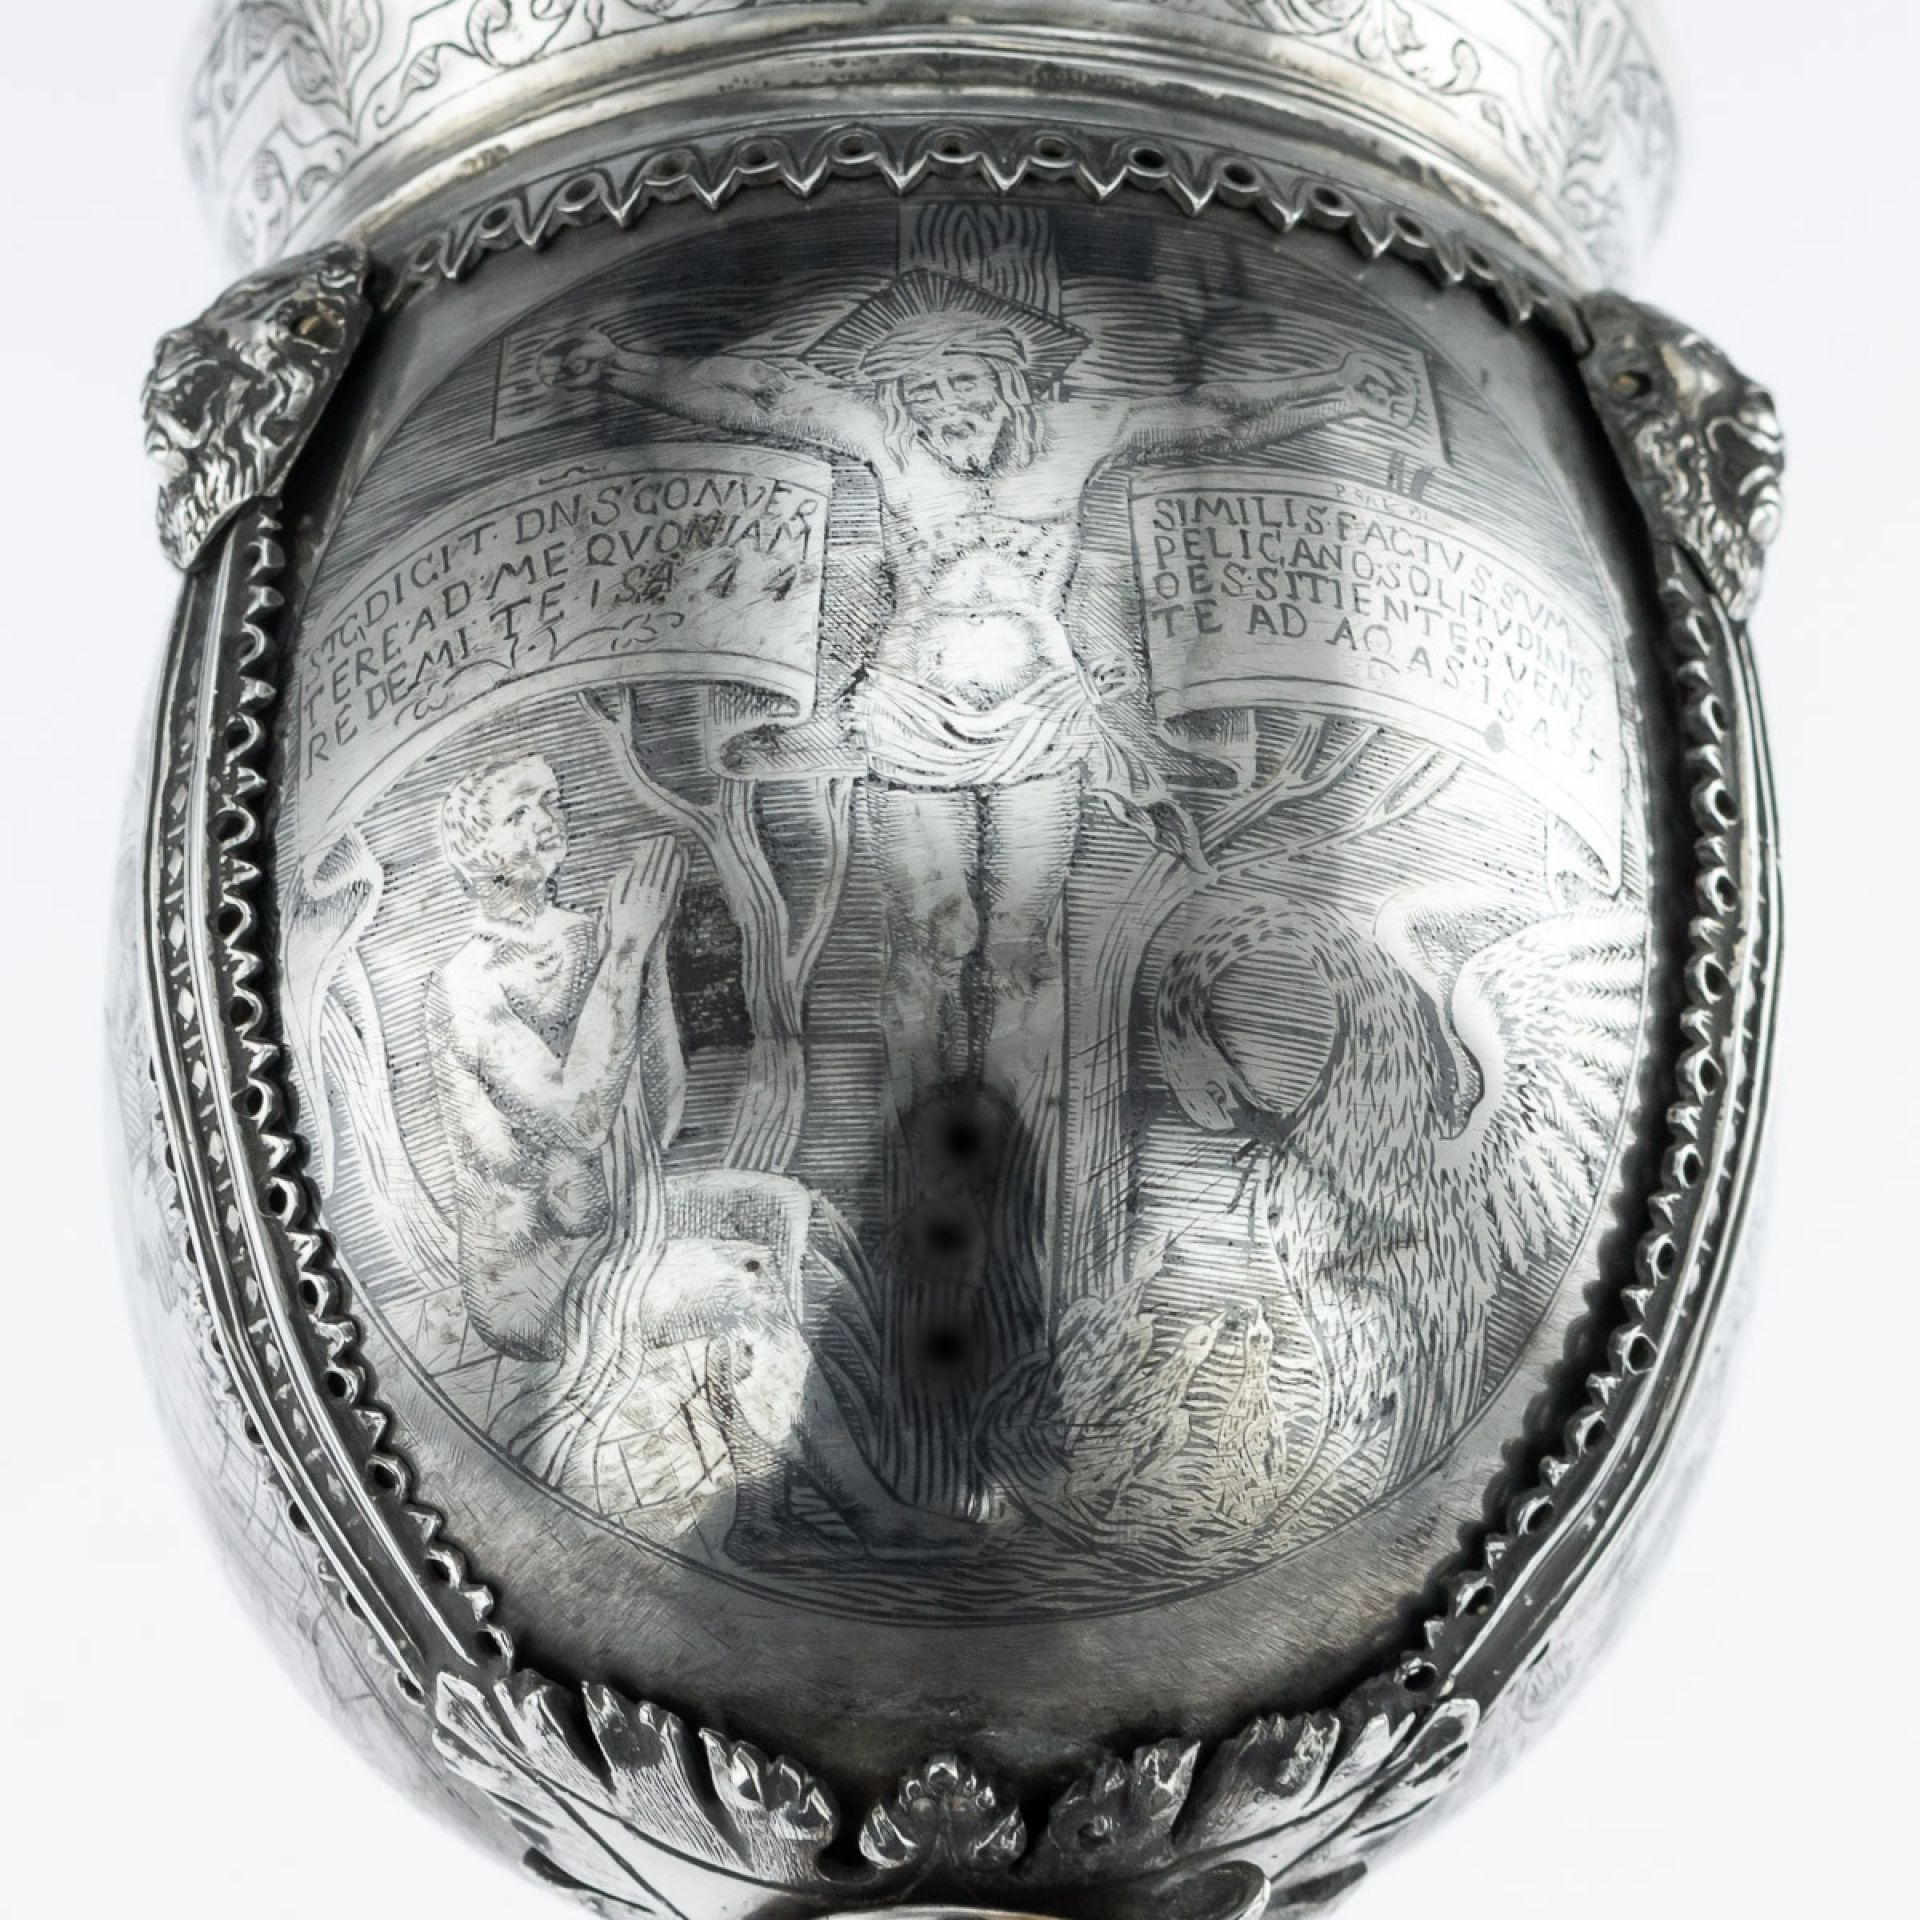 ANTIQUE 19thC CONTINENTAL SOLID SILVER & NIELLO ENAMEL CUP WITH COVER c.1820